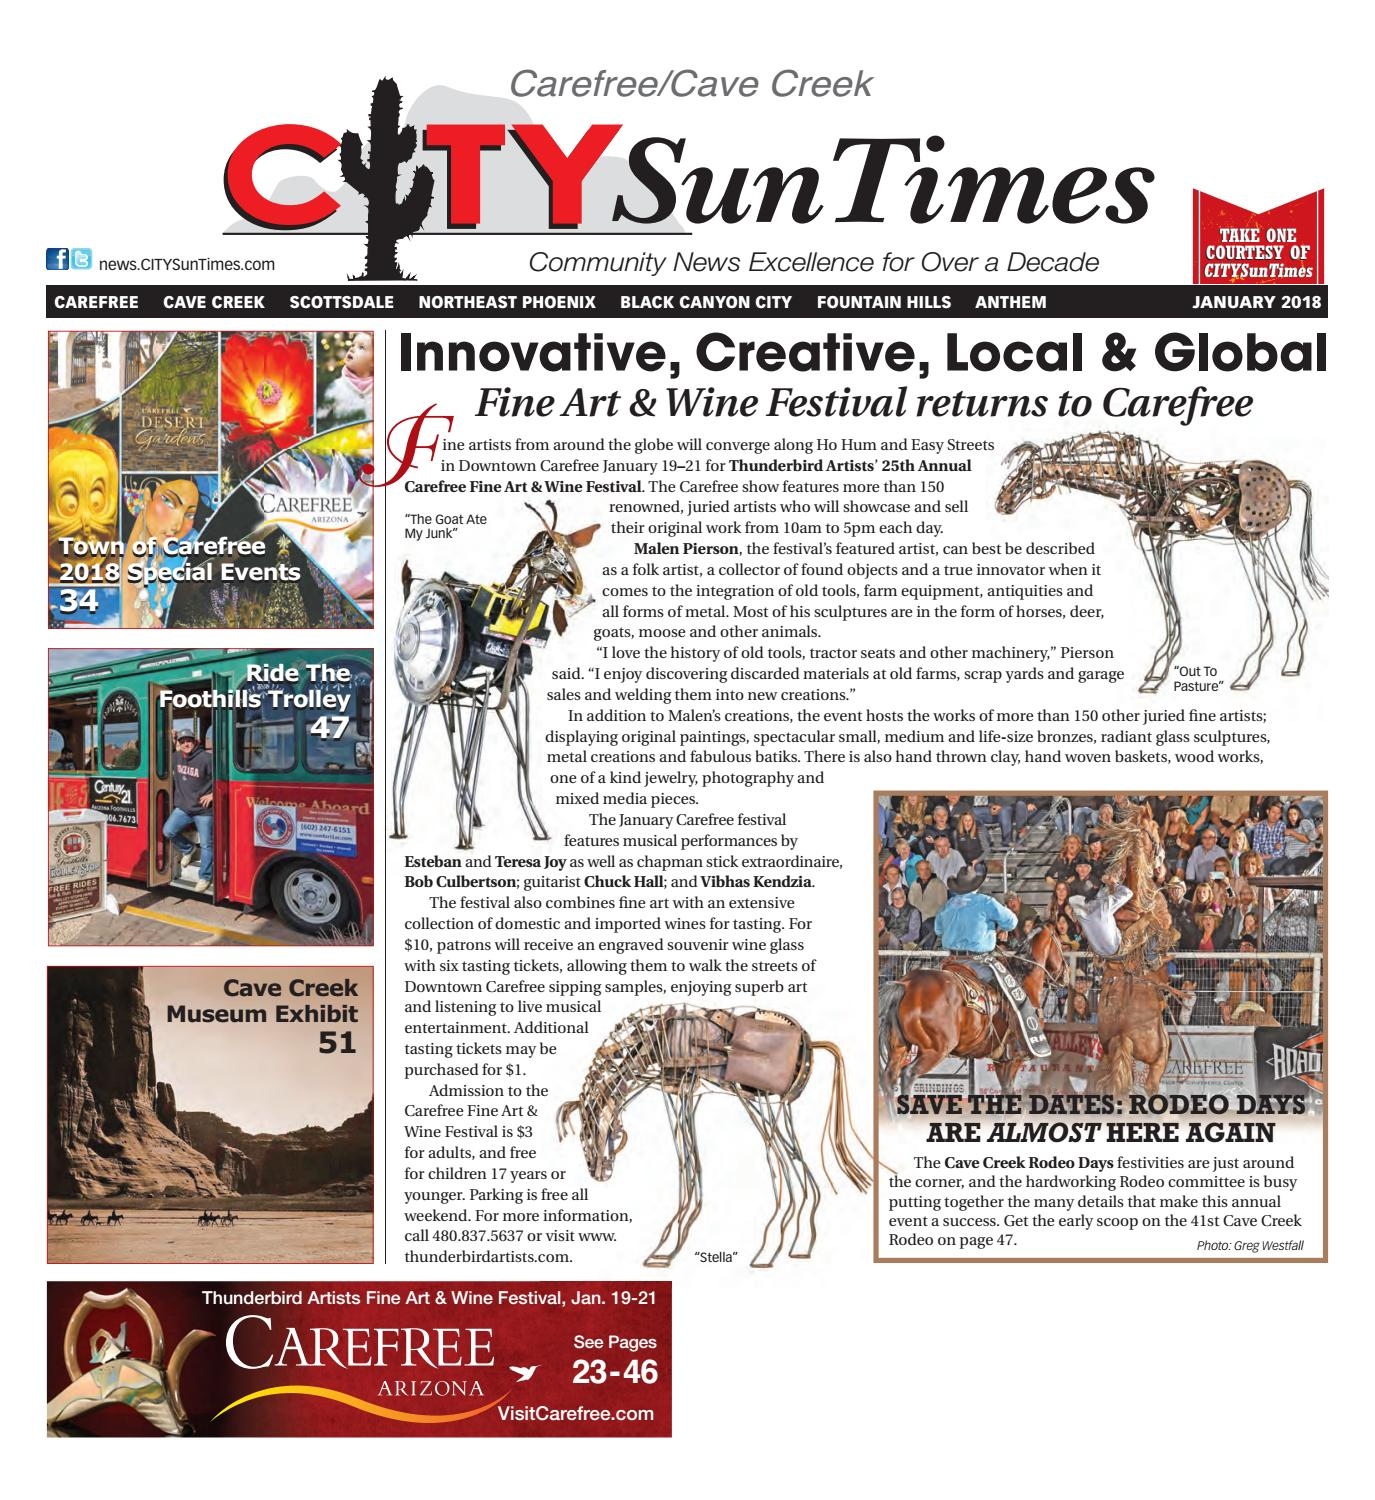 Carefree Cave Creek January 2018 Issue of CITYSunTimes by